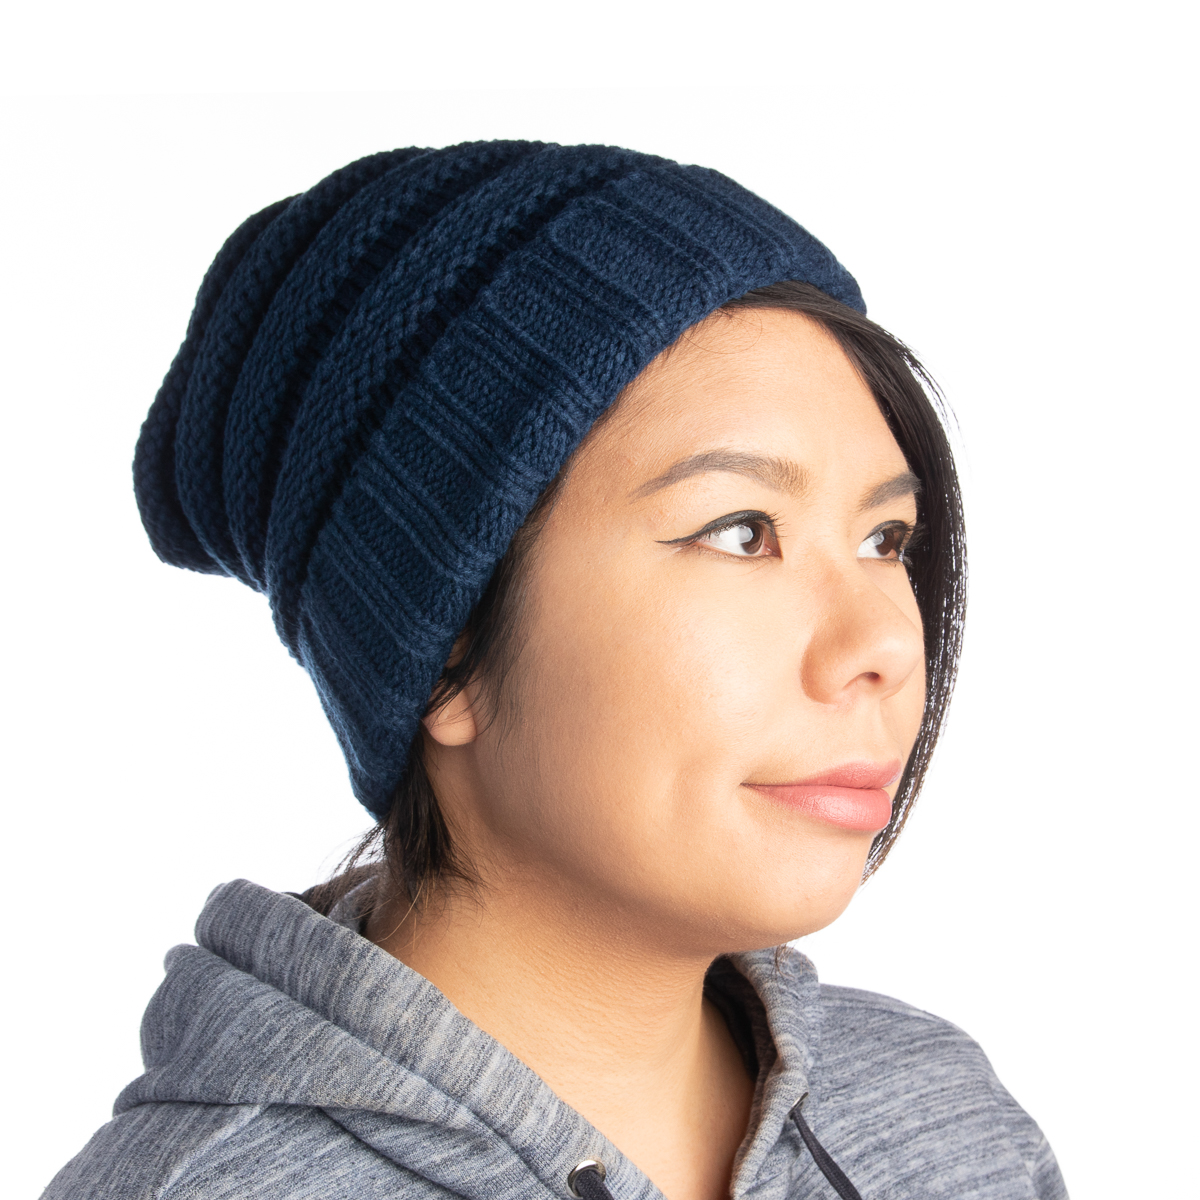 Womens-Slouchy-Ribbed-Knit-Chunky-Beanie-Winter-Hat-Warm-Cute-Lightweight-Chic thumbnail 16